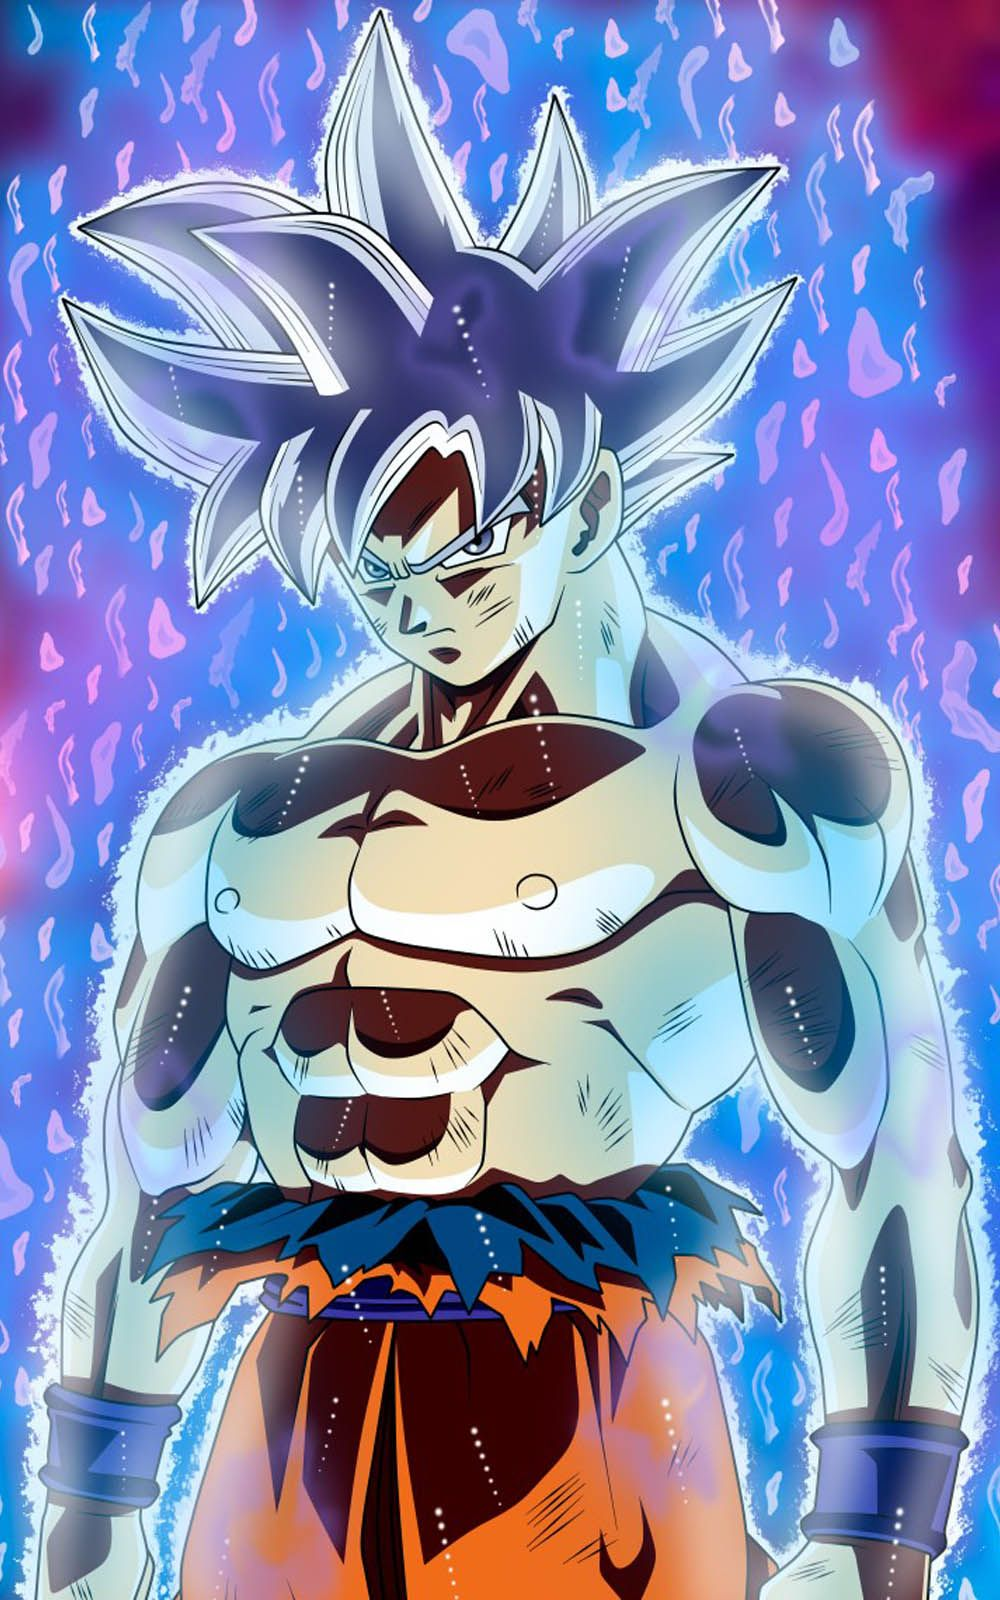 Ultra Instinct Goku Dragon Ball Super Dragon Ball Super Manga Dragon Ball Dragon Ball Tattoo